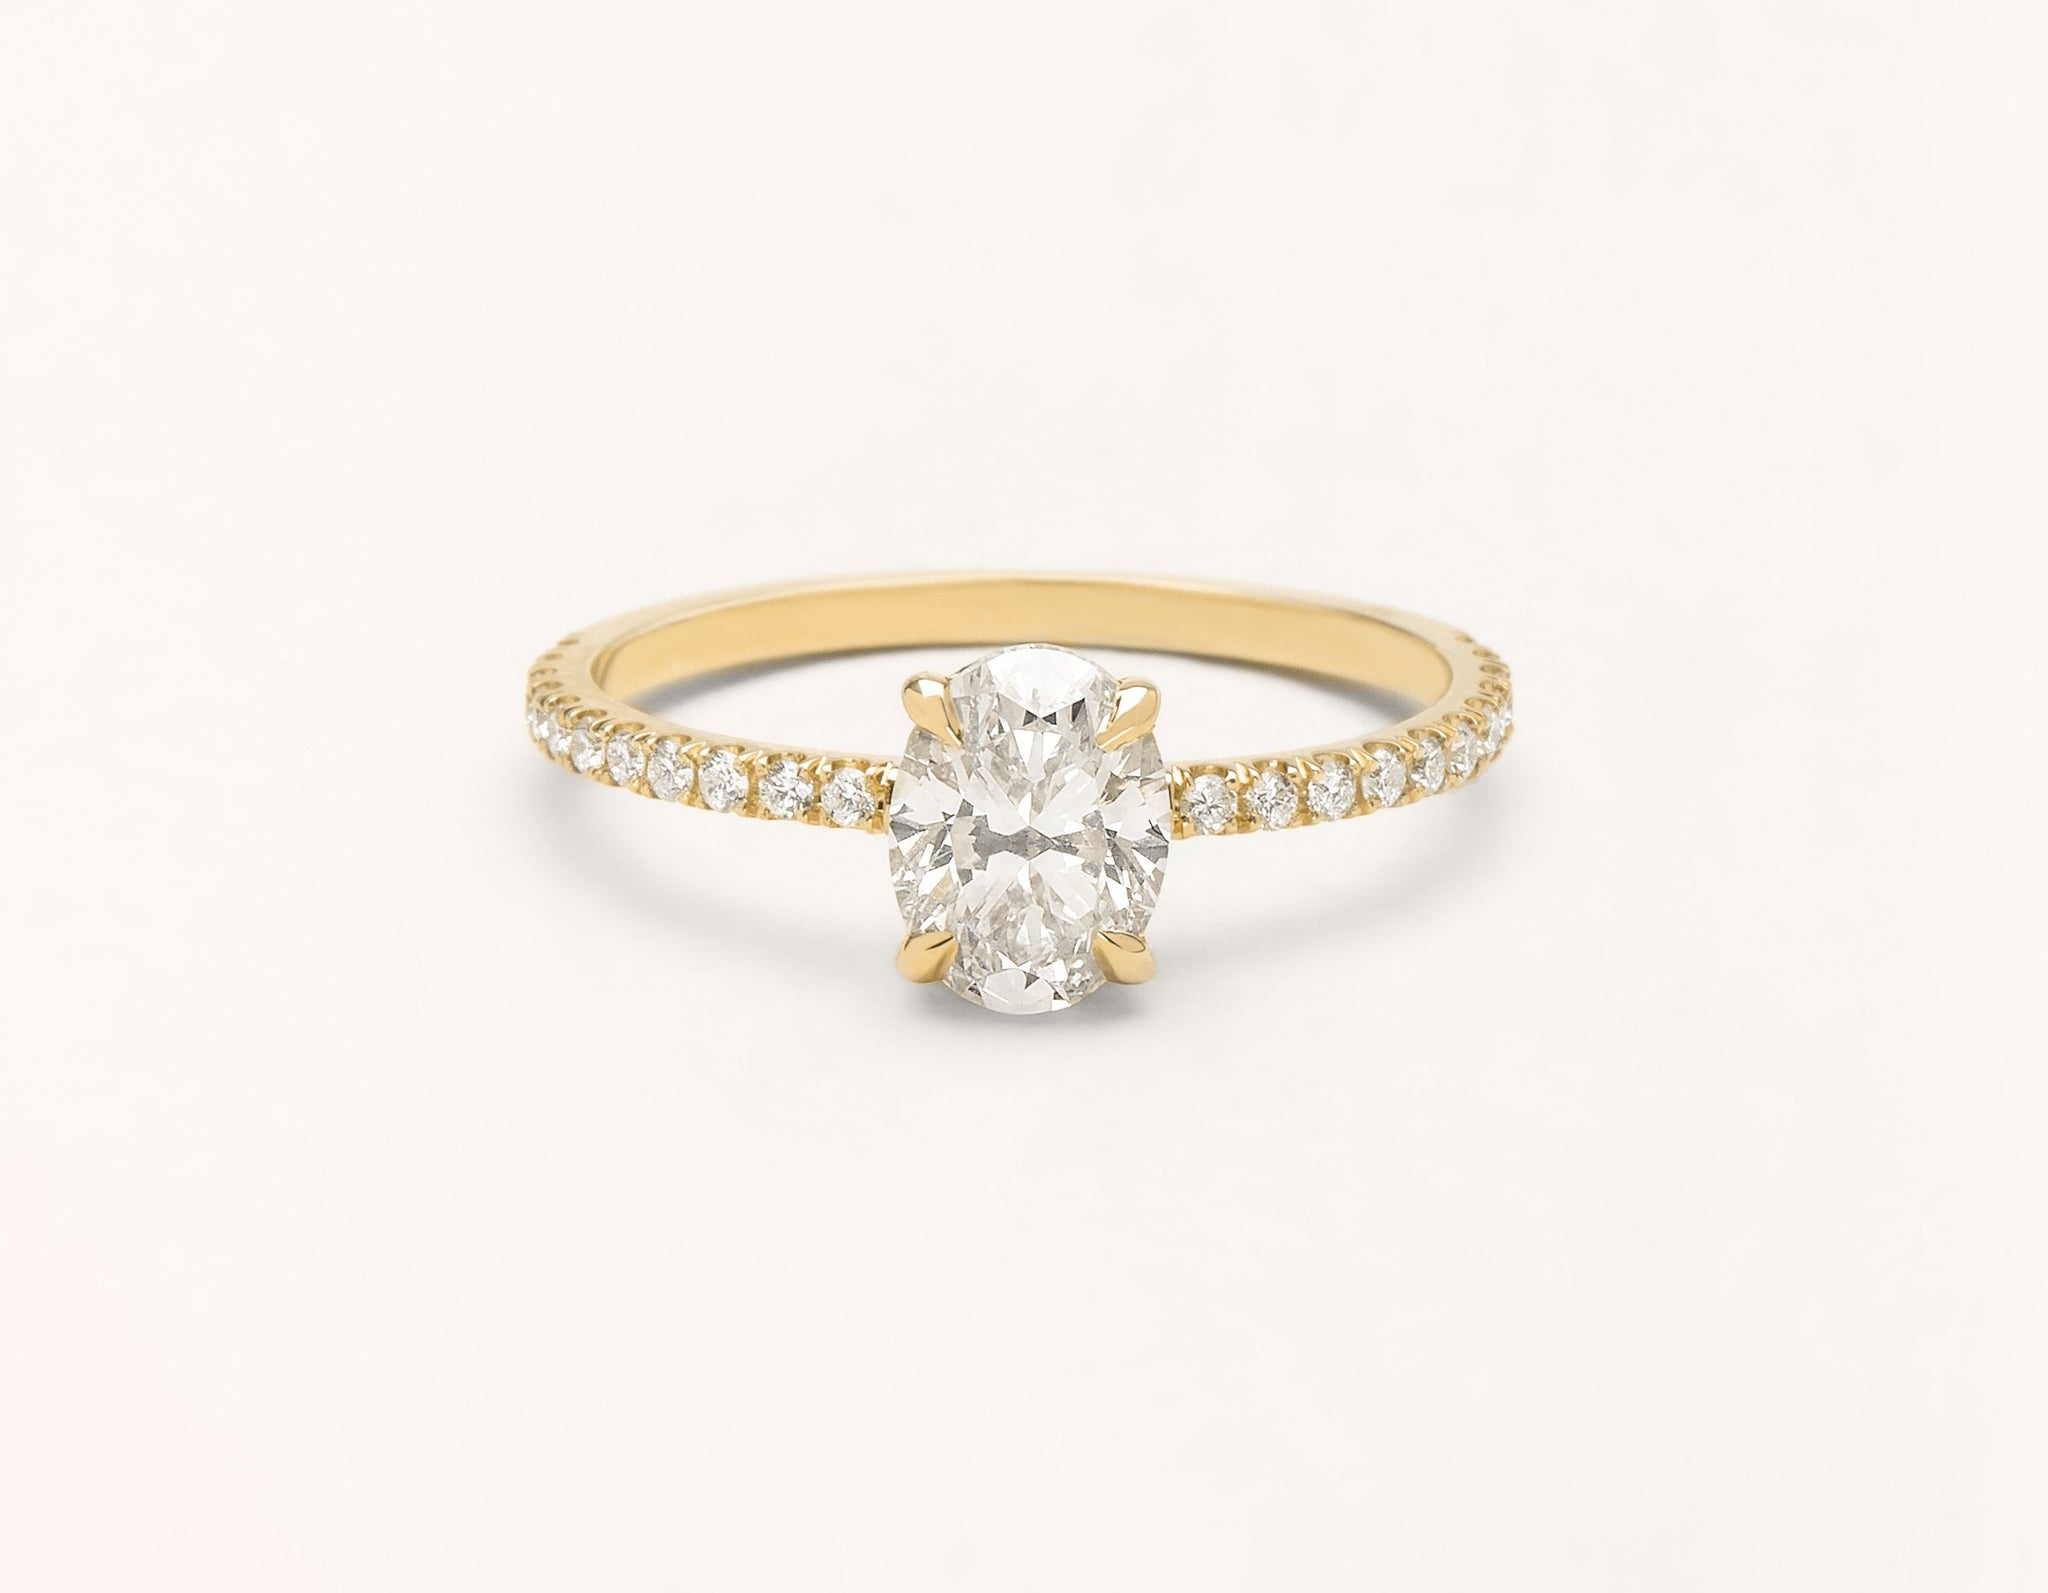 Minimalist 18k solid yellow gold The Oval pave engagement ring 1 ct diamond Vrai and Oro